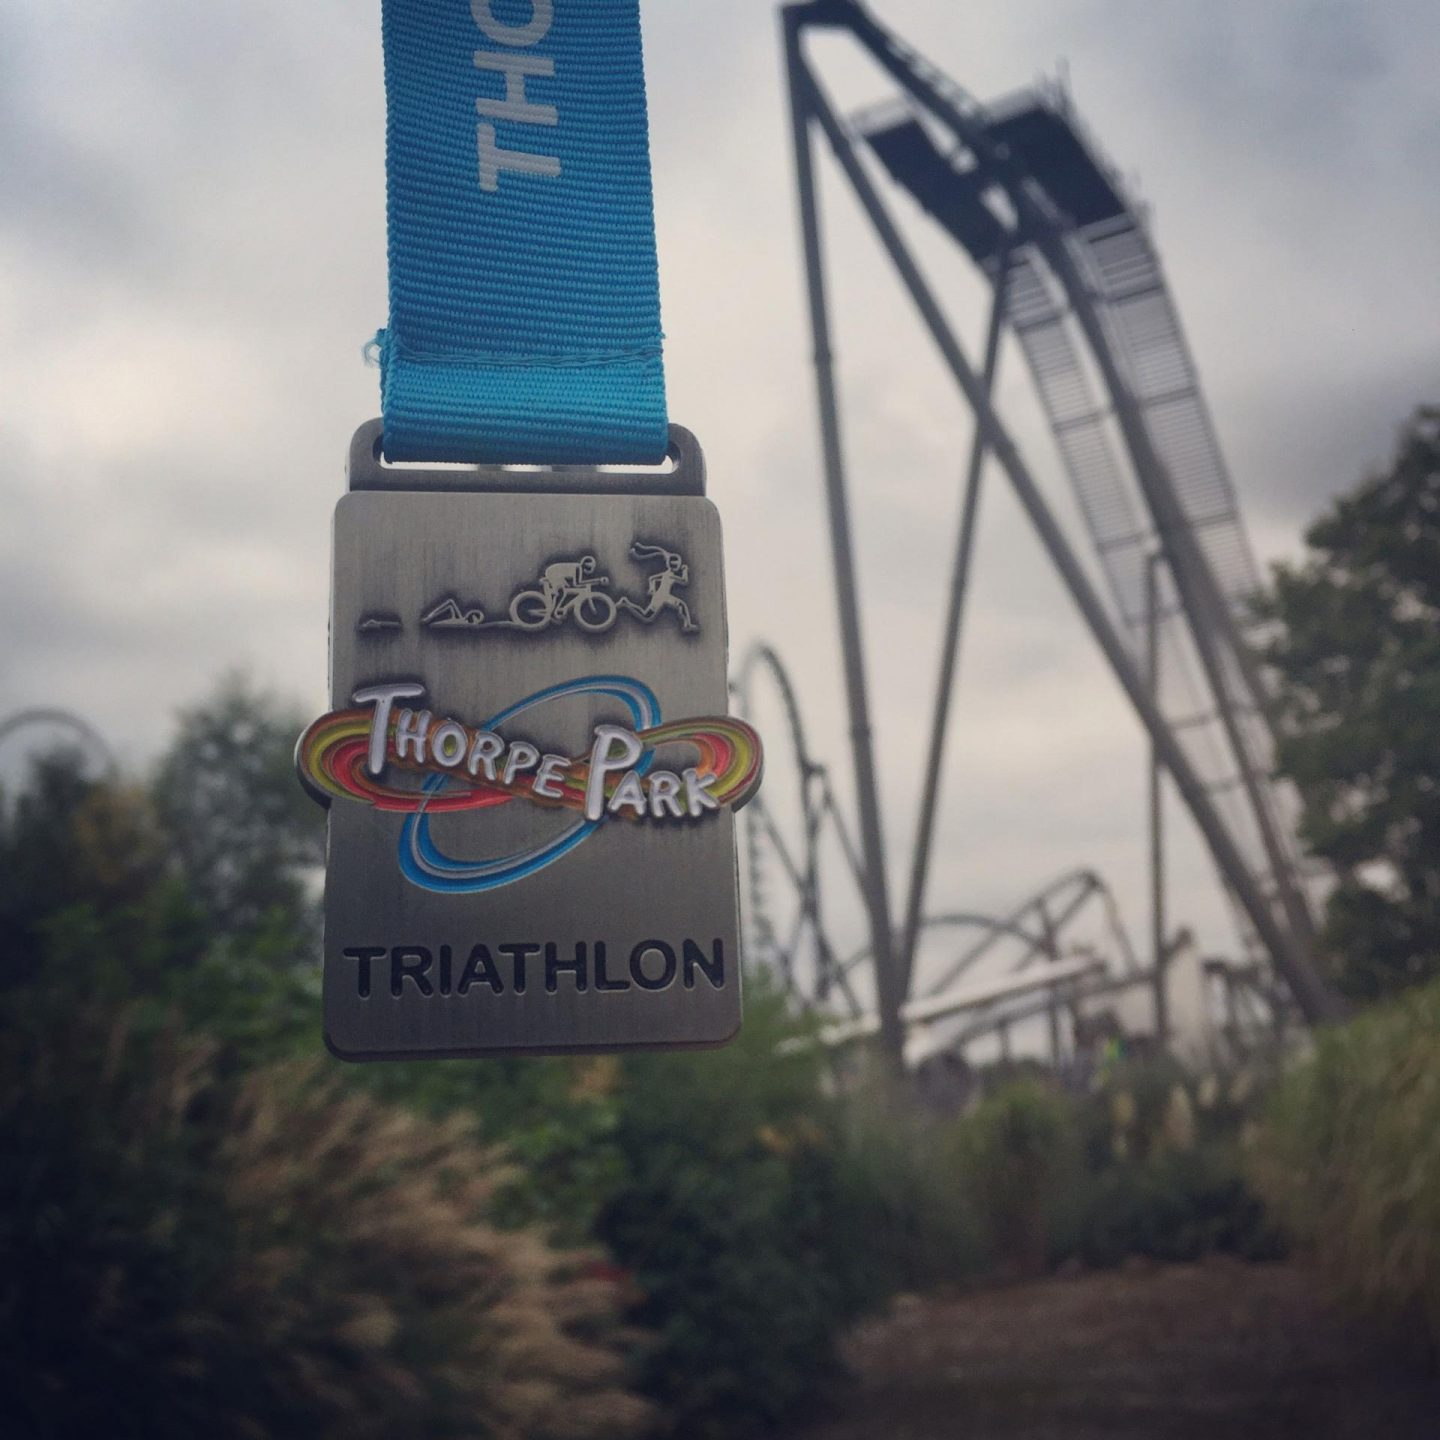 Thorpe Park Triathlon